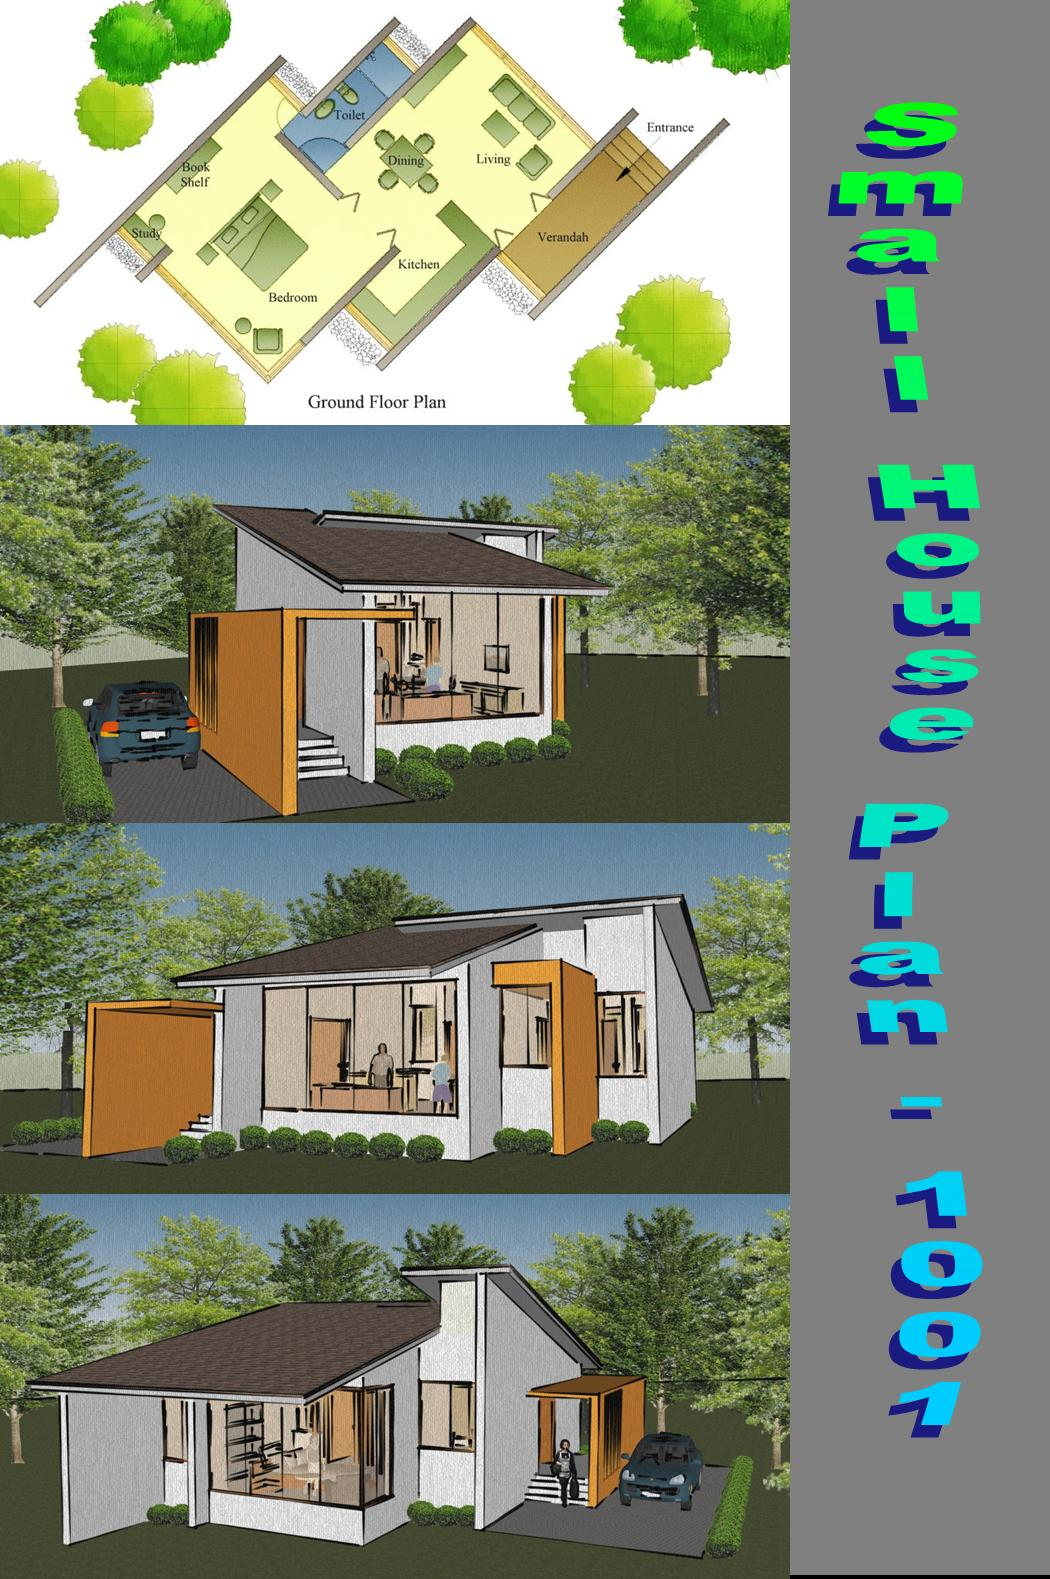 Home plans in india 5 best small home plans from for House building plans in india